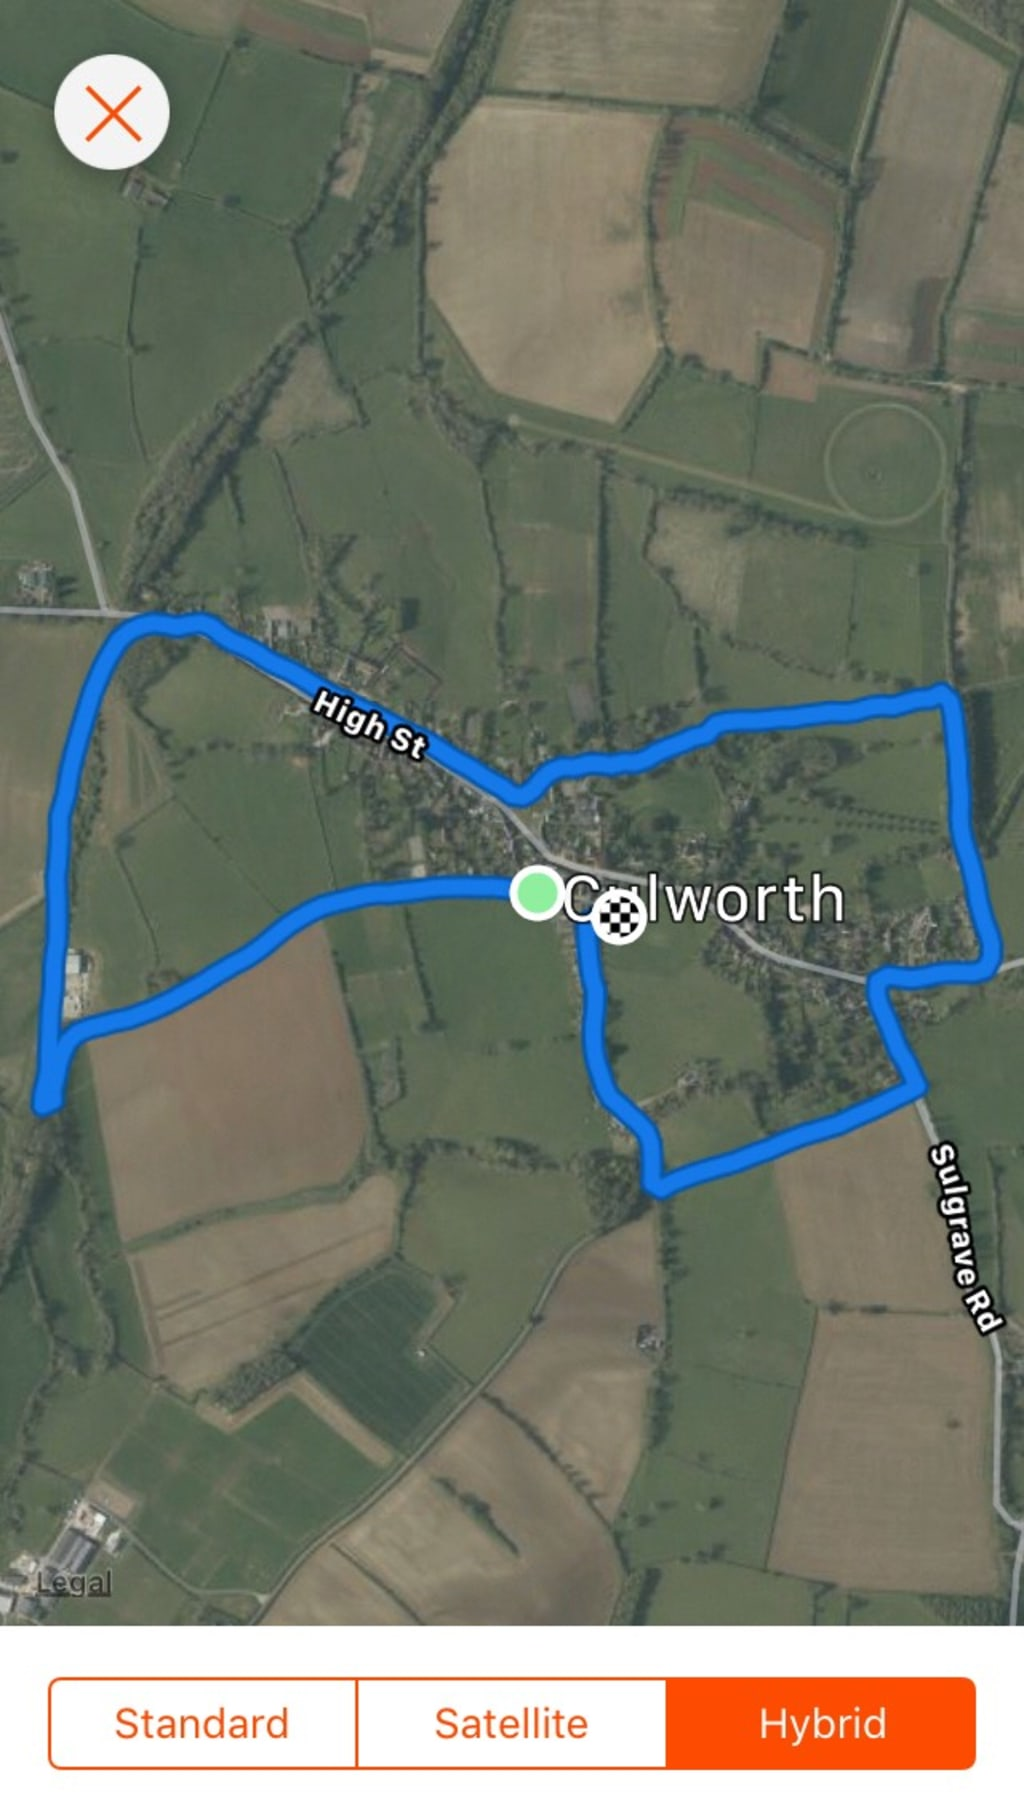 15496399334462018-09-09-culworth-banbury-m.png